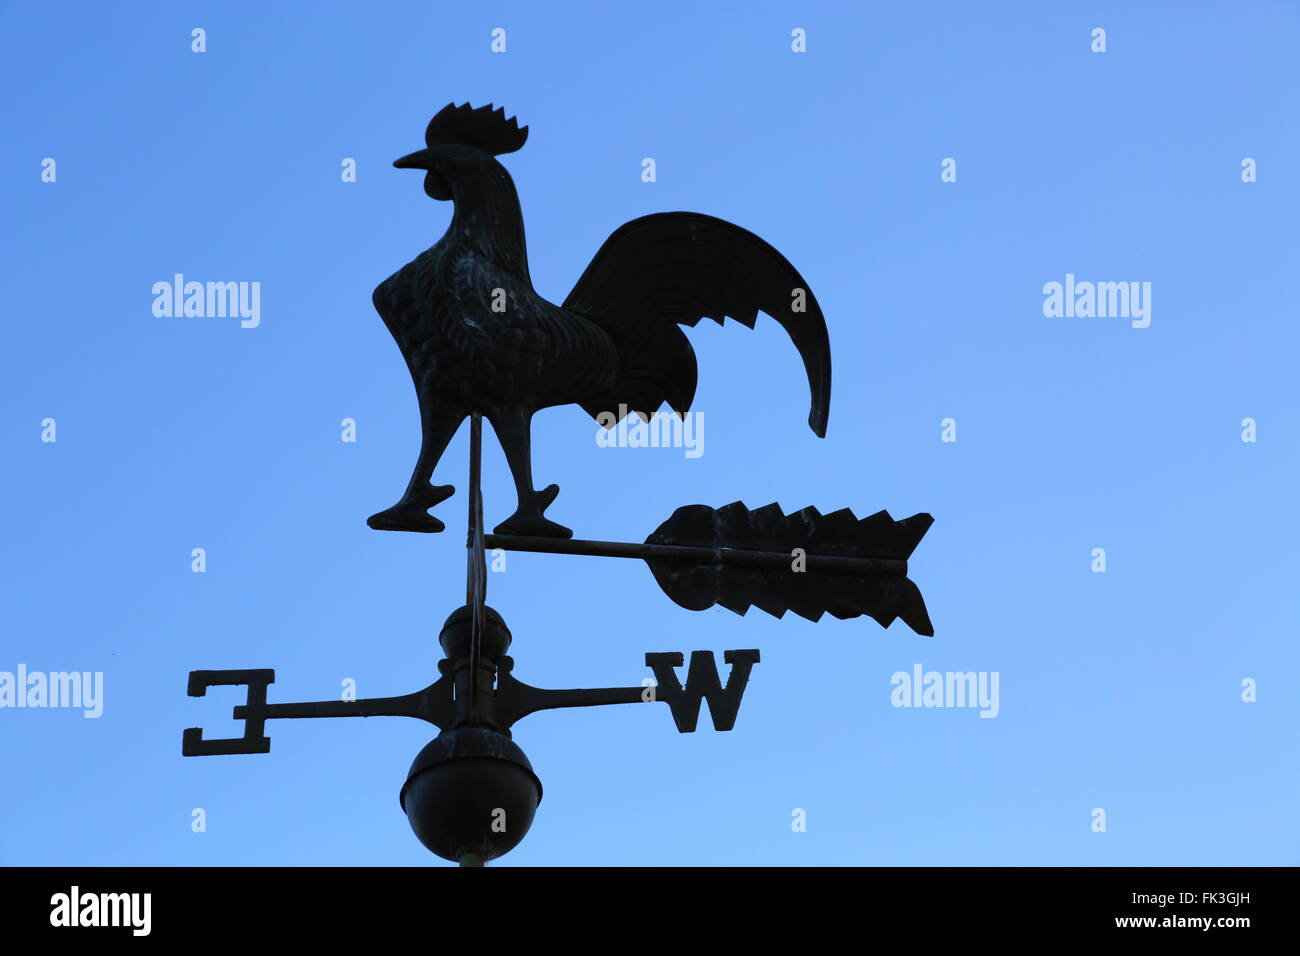 A rooster wind vane silhouetted in front of a blue sky. - Stock Image